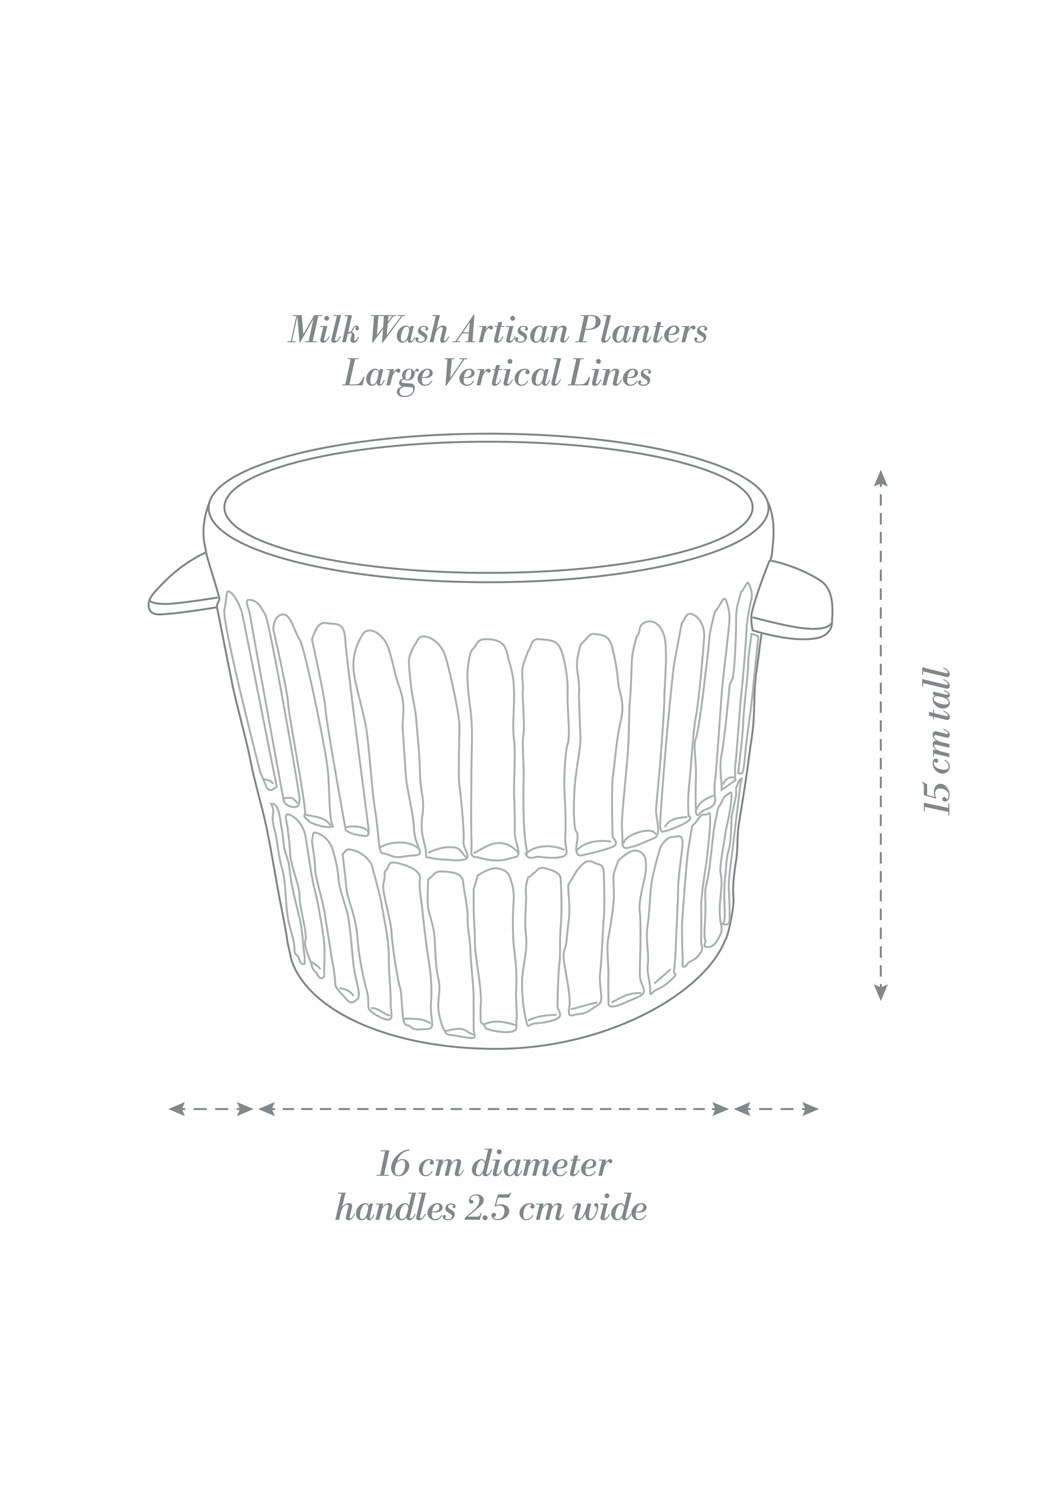 Angus & Celeste Milk Wash Artisan Planter Large Vertical Lines Product Diagram